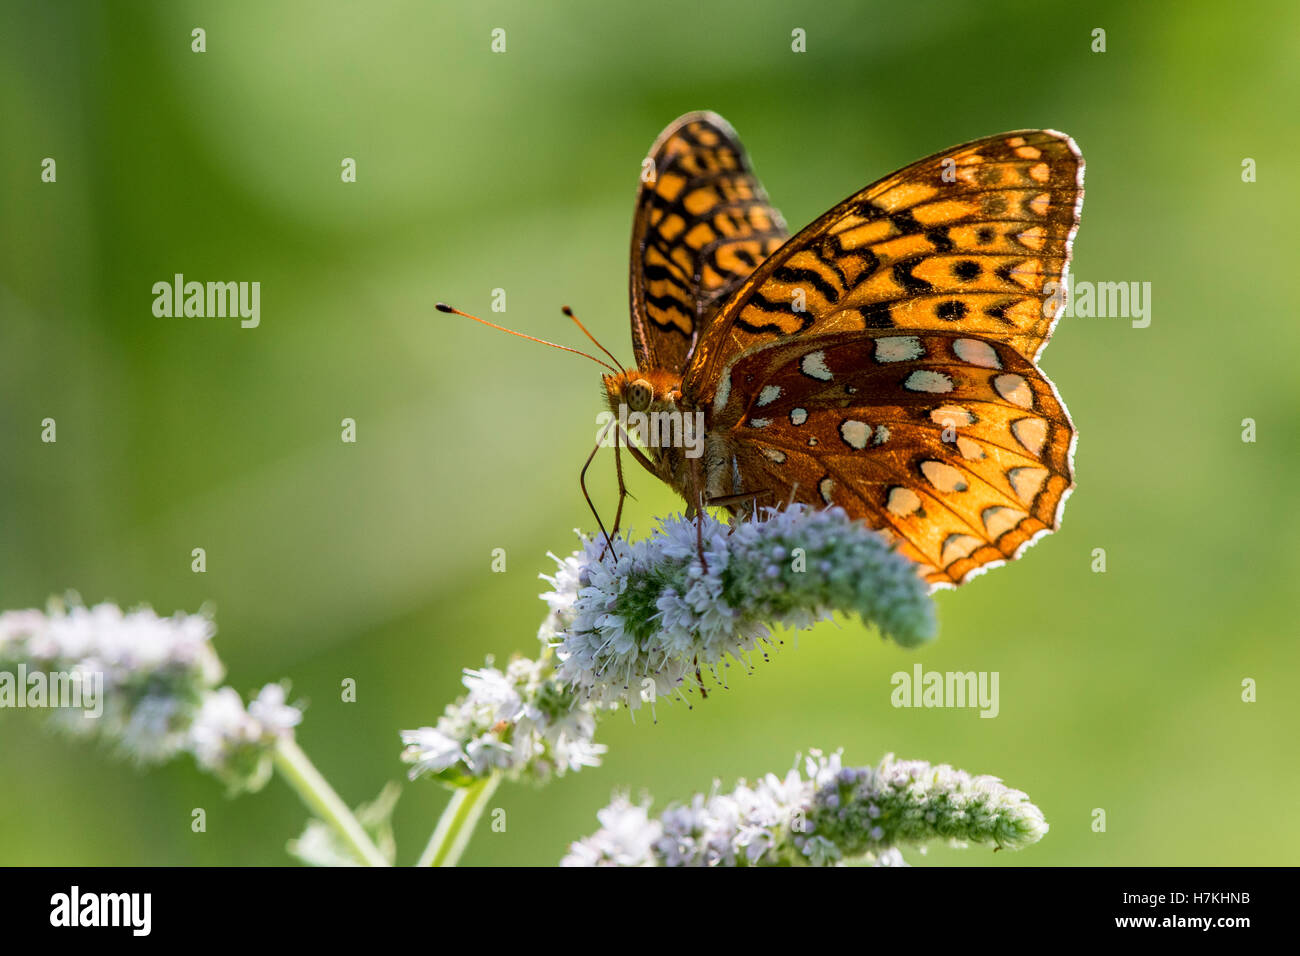 Butterfly on flower. Fritillary butterfly resting on mint flower with wings spread in sun. - Stock Image